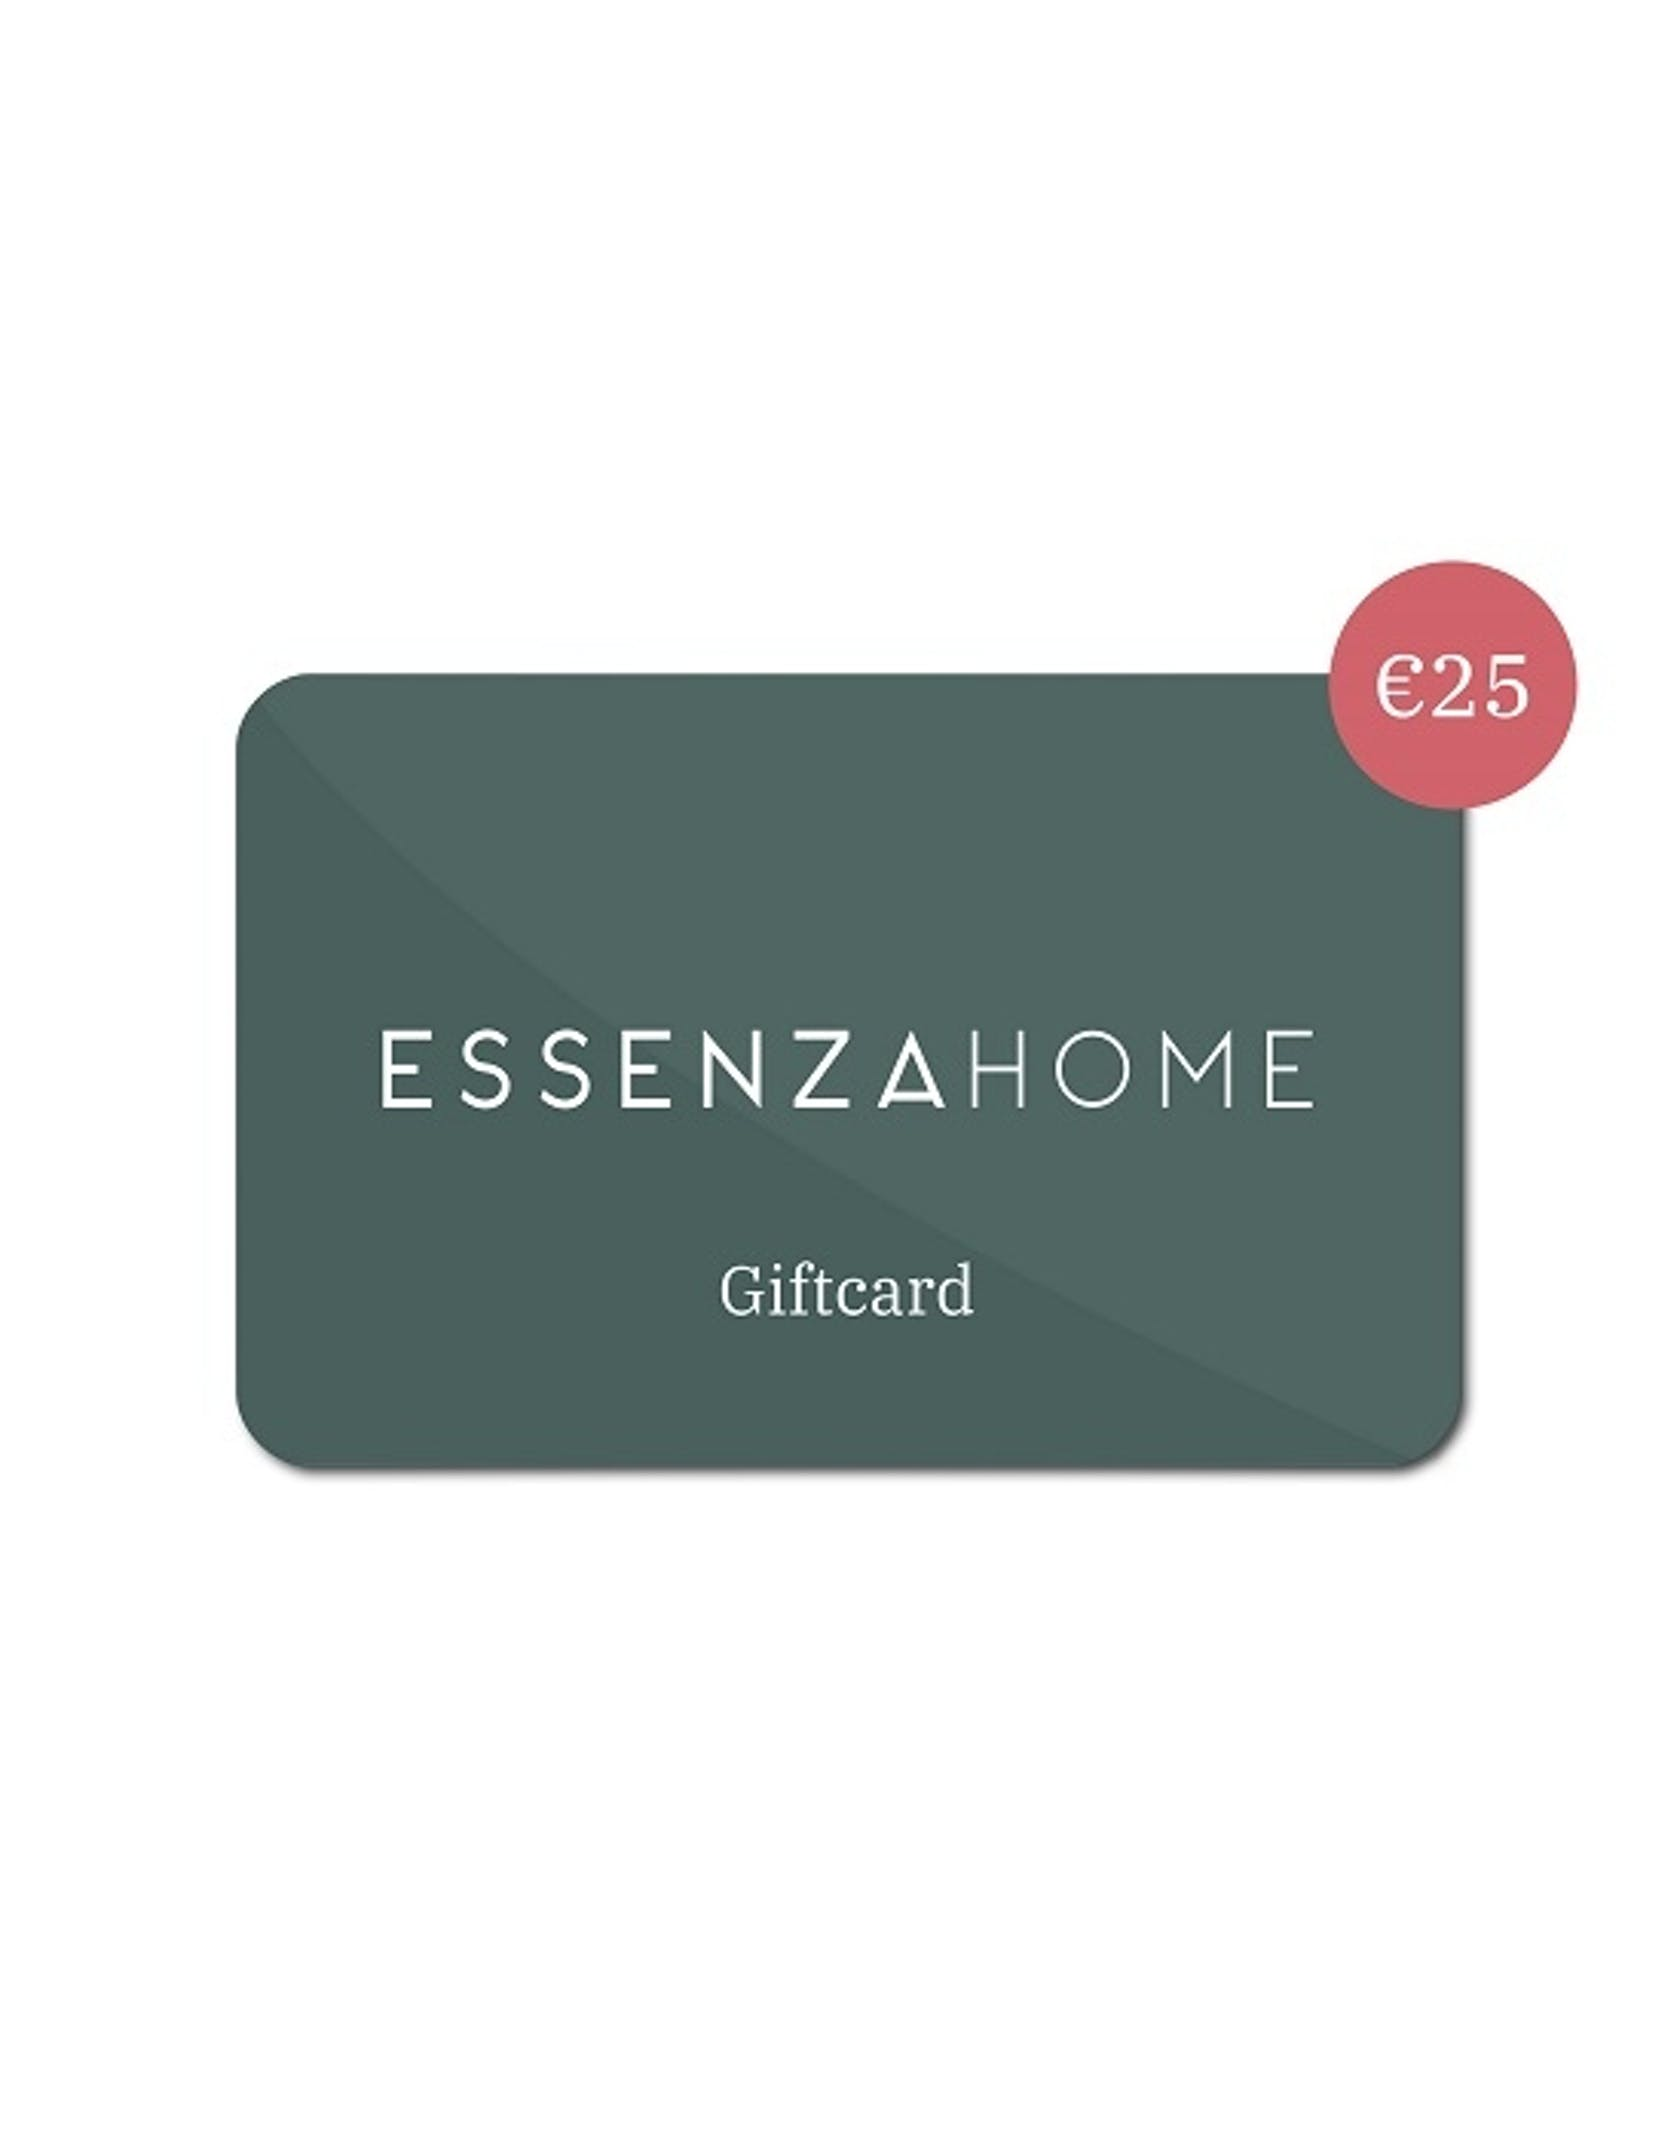 ESSENZA HOME Giftcard 25 Euro